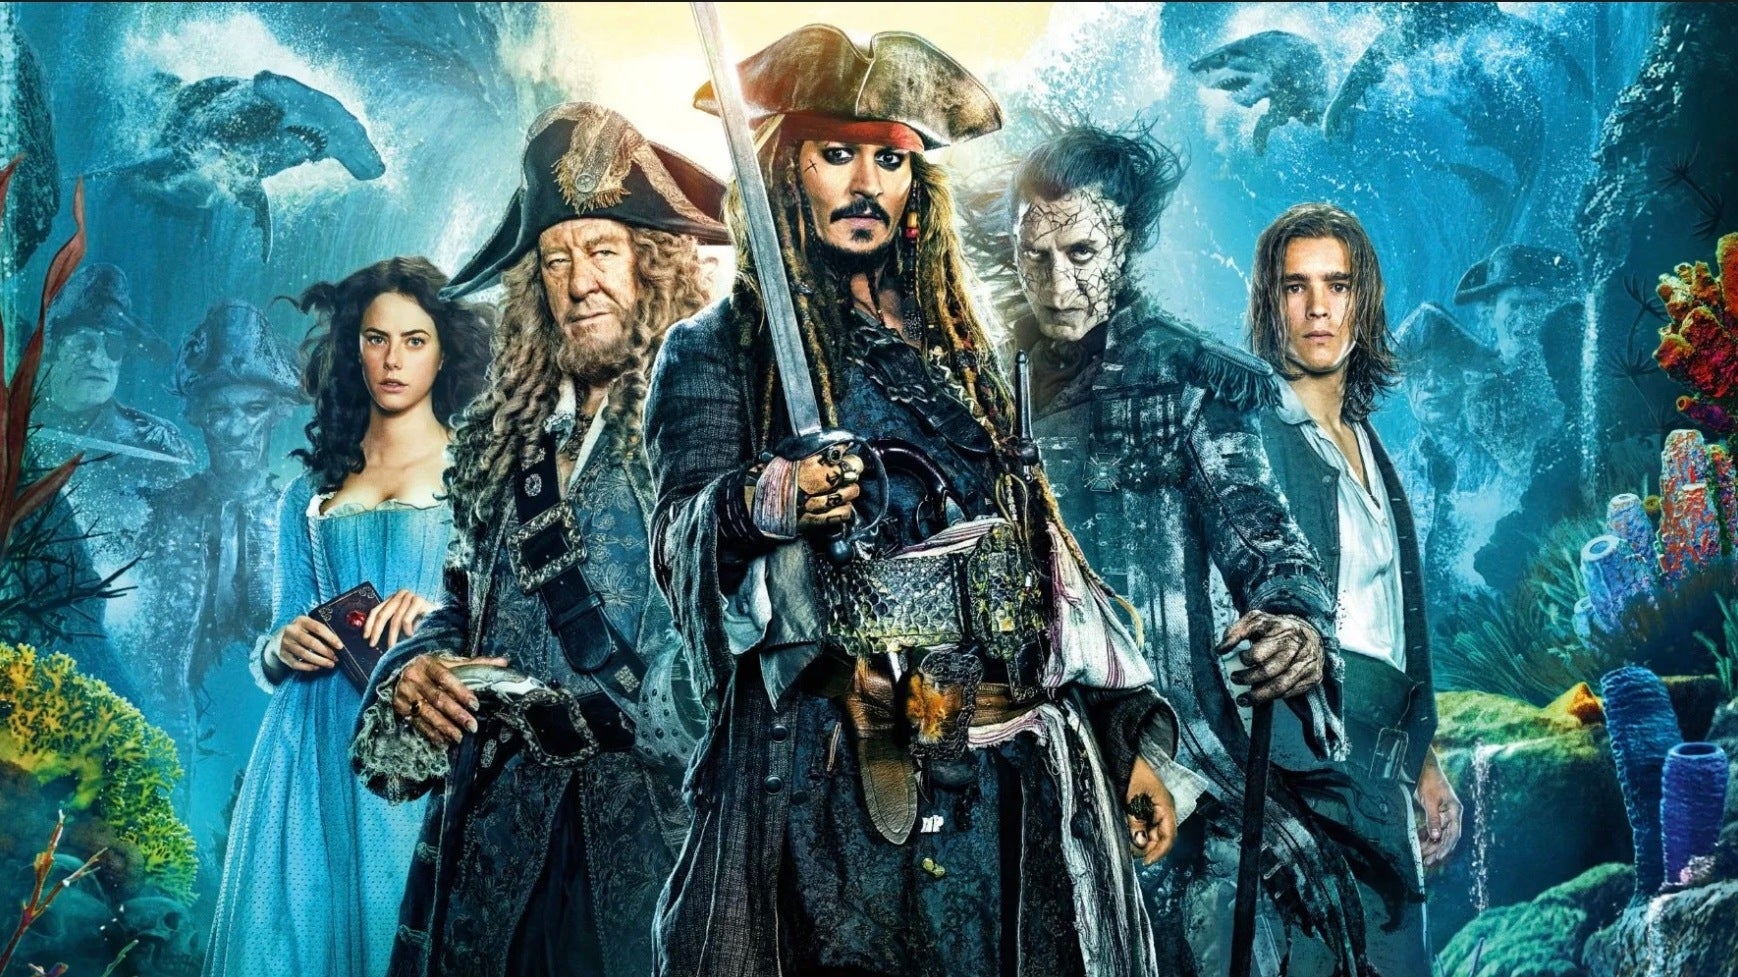 Disney Is Reportedly Looking To Reboot Pirates Of The Caribbean